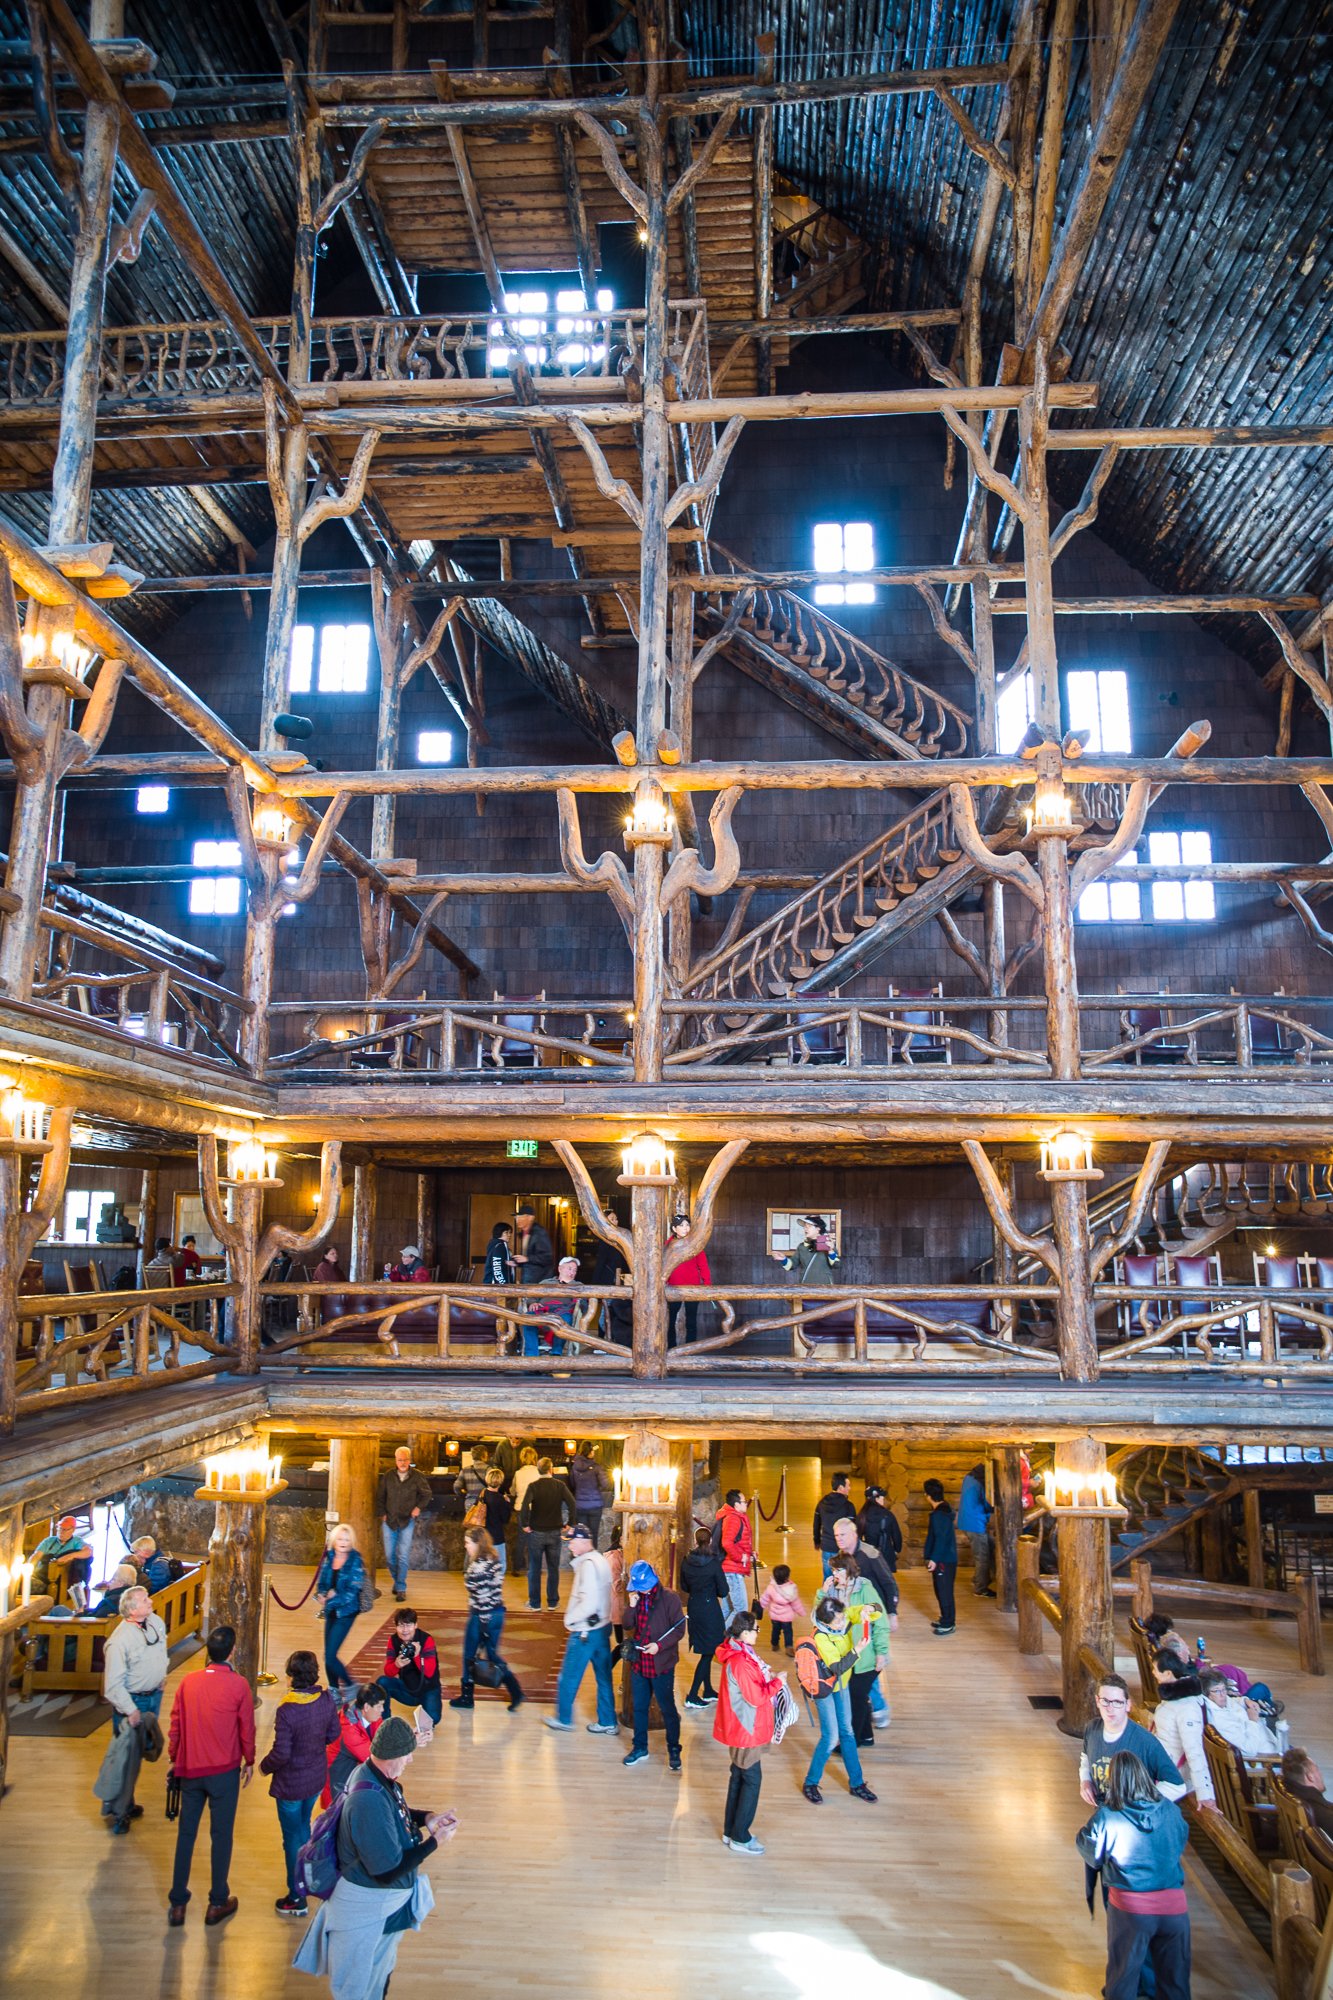 Do these rafters look like a railroad trestle?